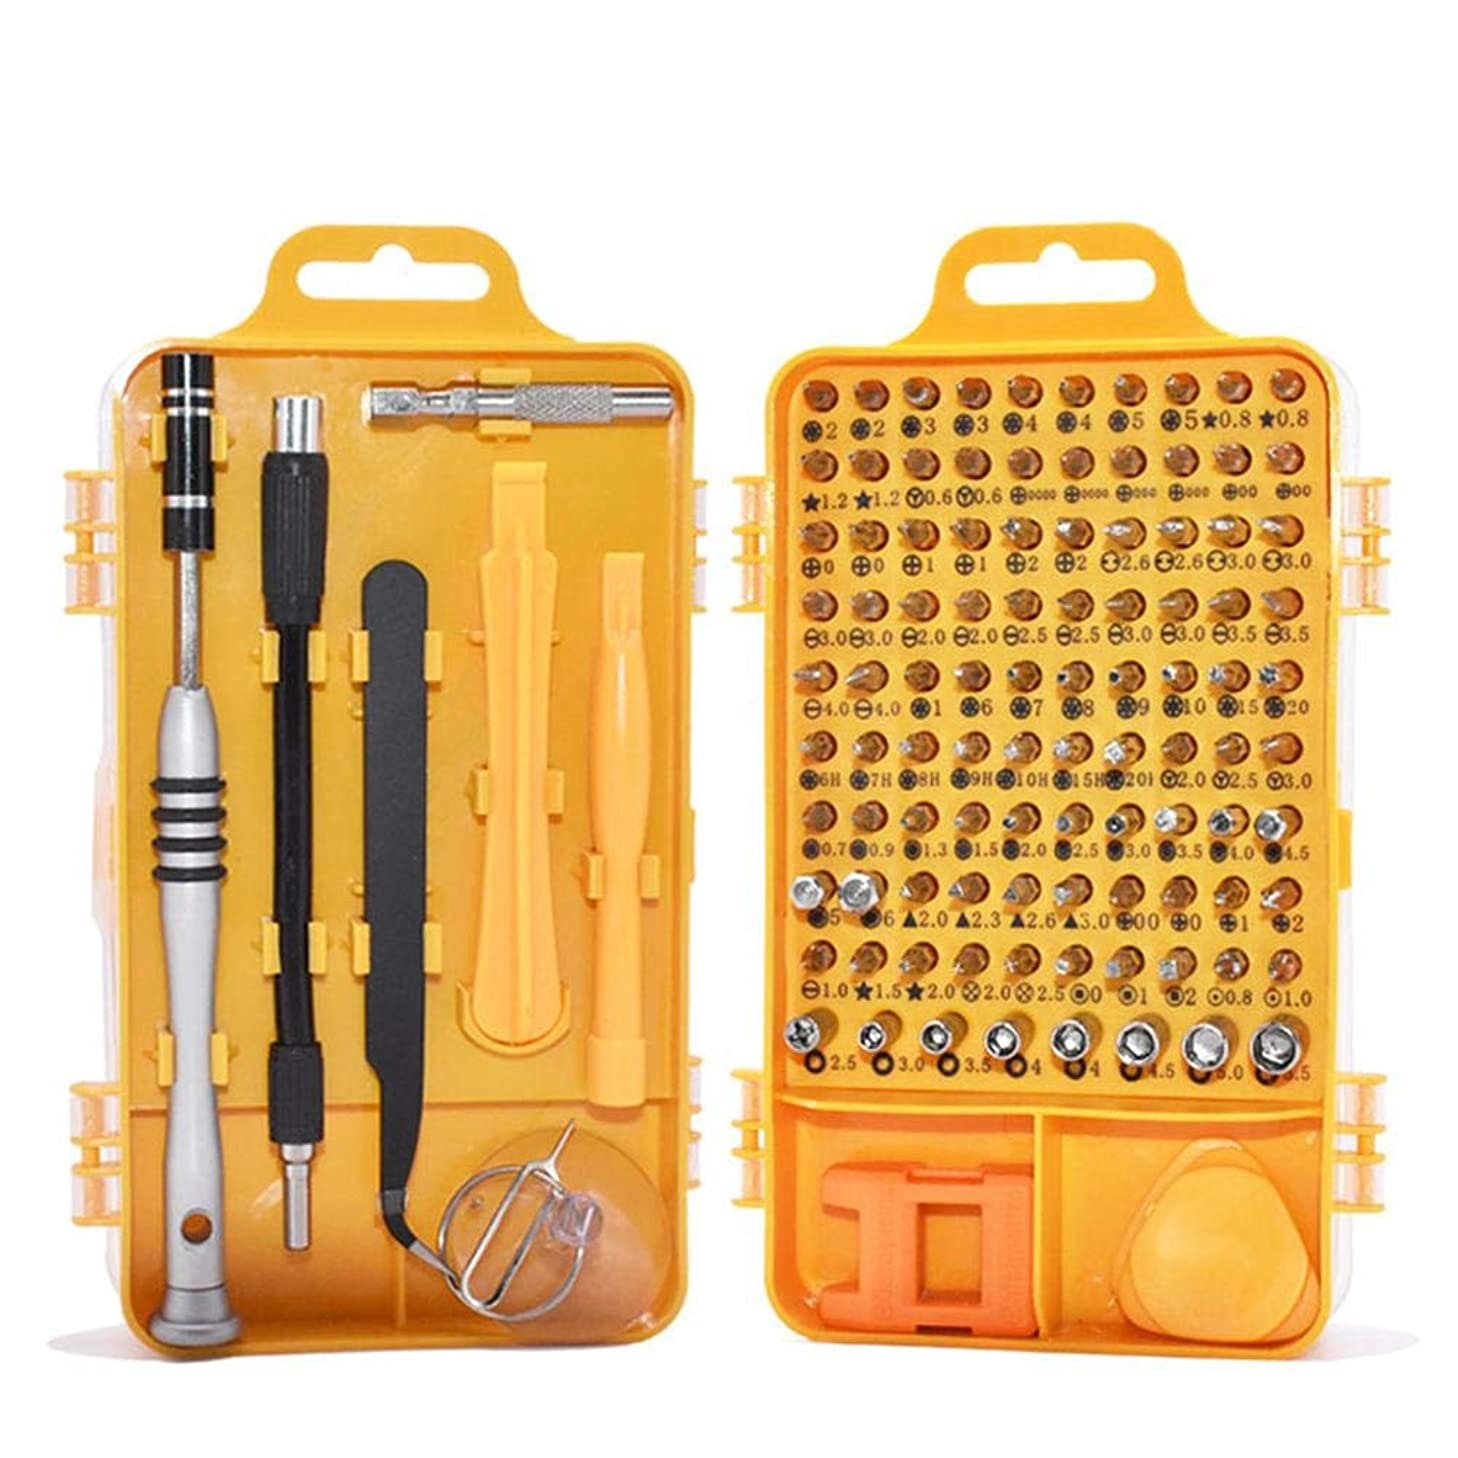 Cowmole Co. Screwdriver Set 110 in 1 Sets Multi-function Computer PC Mobile Phone Cellphone Digital Electronic Device Repair Home Tools Bit